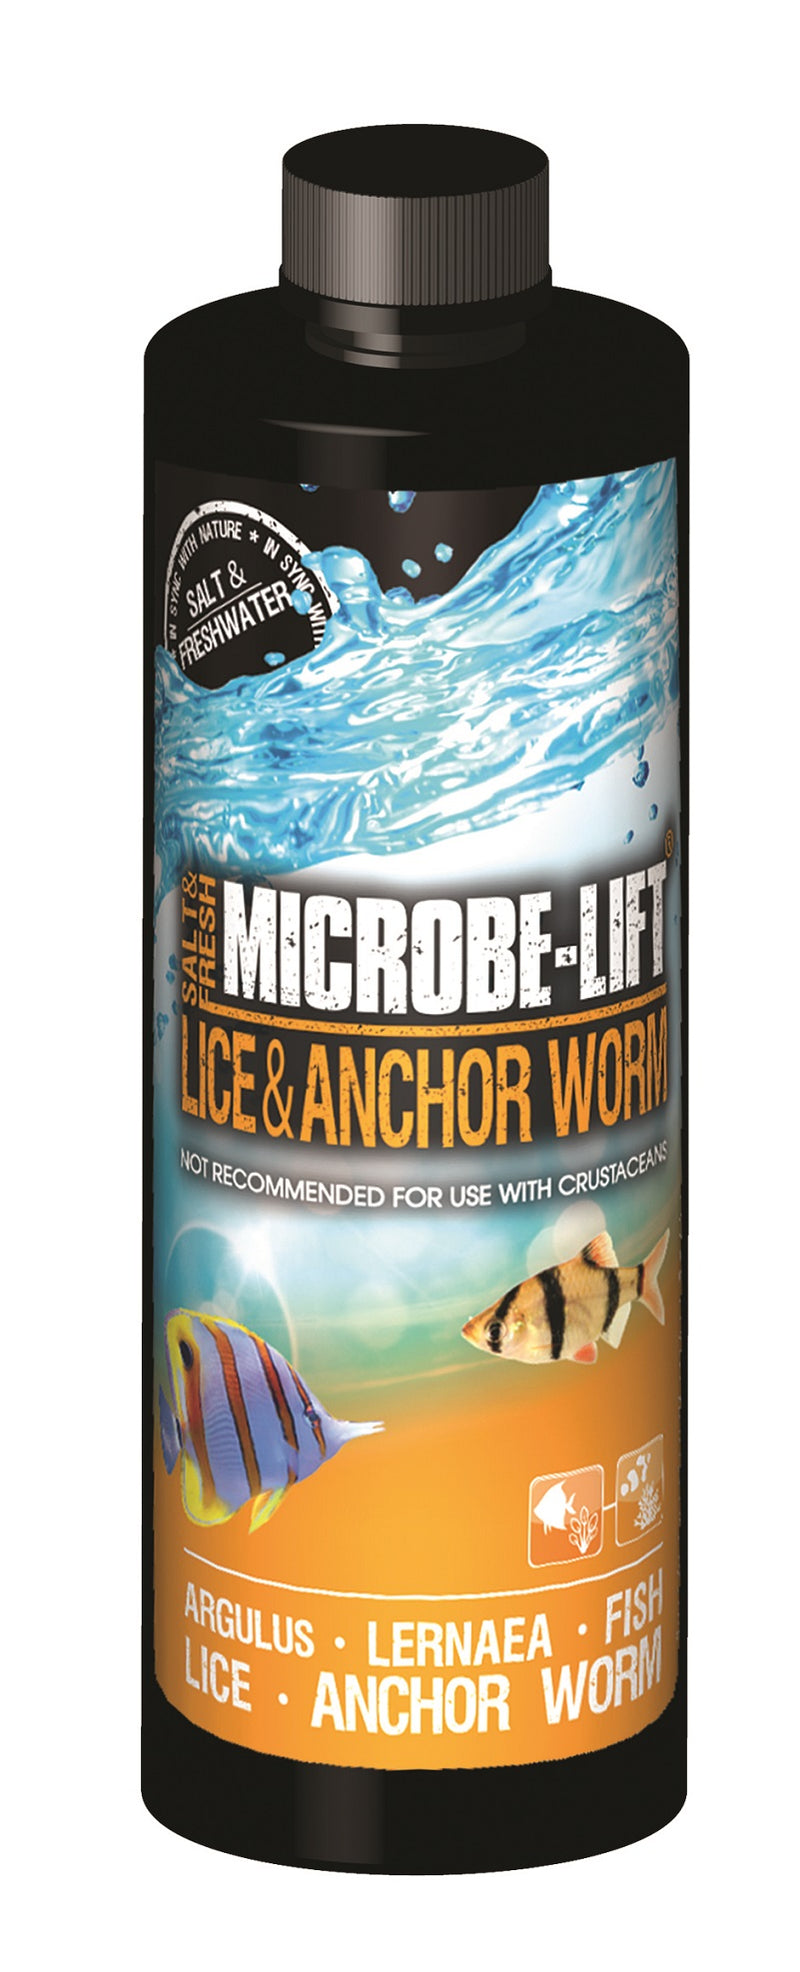 Microbe Lift Lice and Anchor Worm 16 oz